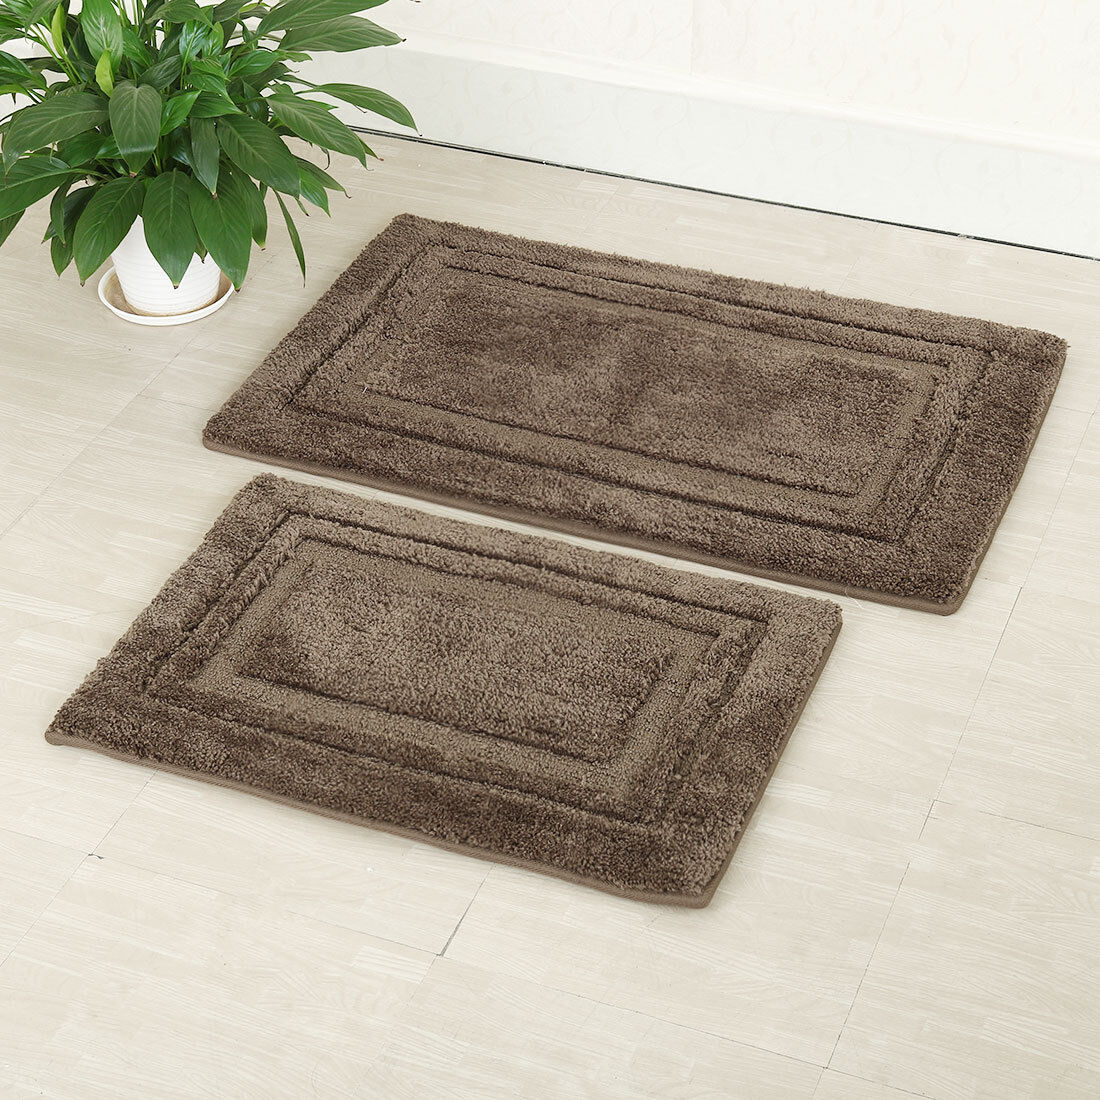 carpet cheap playa cowhides online products rugs mat estate chunky mats jute natural rug